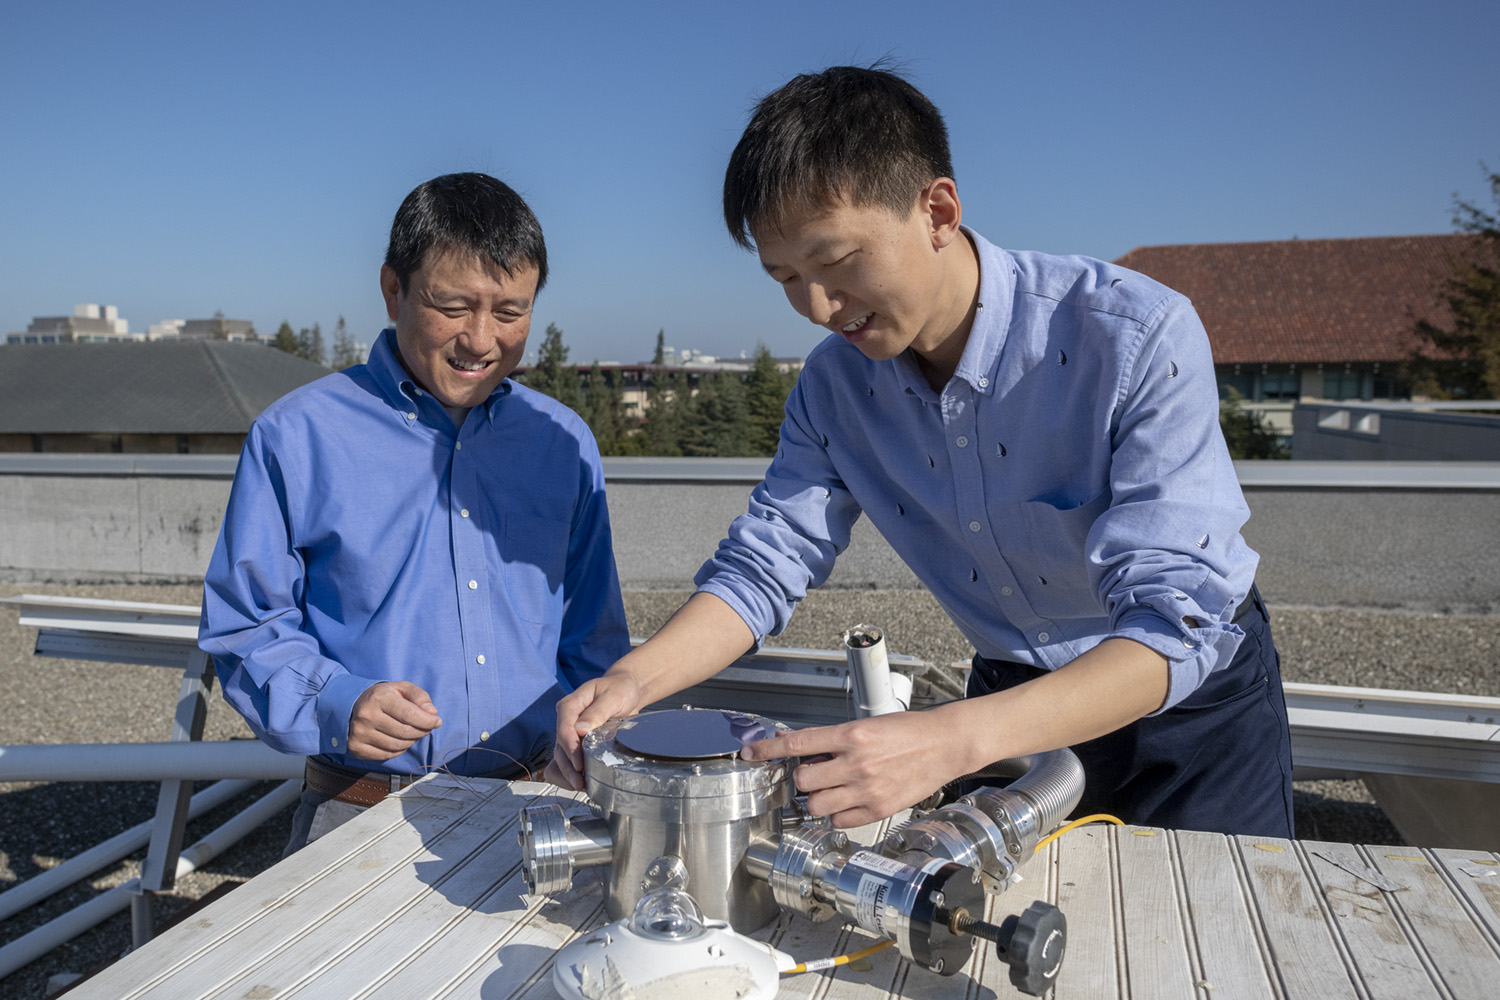 Hybrid rooftop device to harvest solar energy and passively cool buildings at the same time